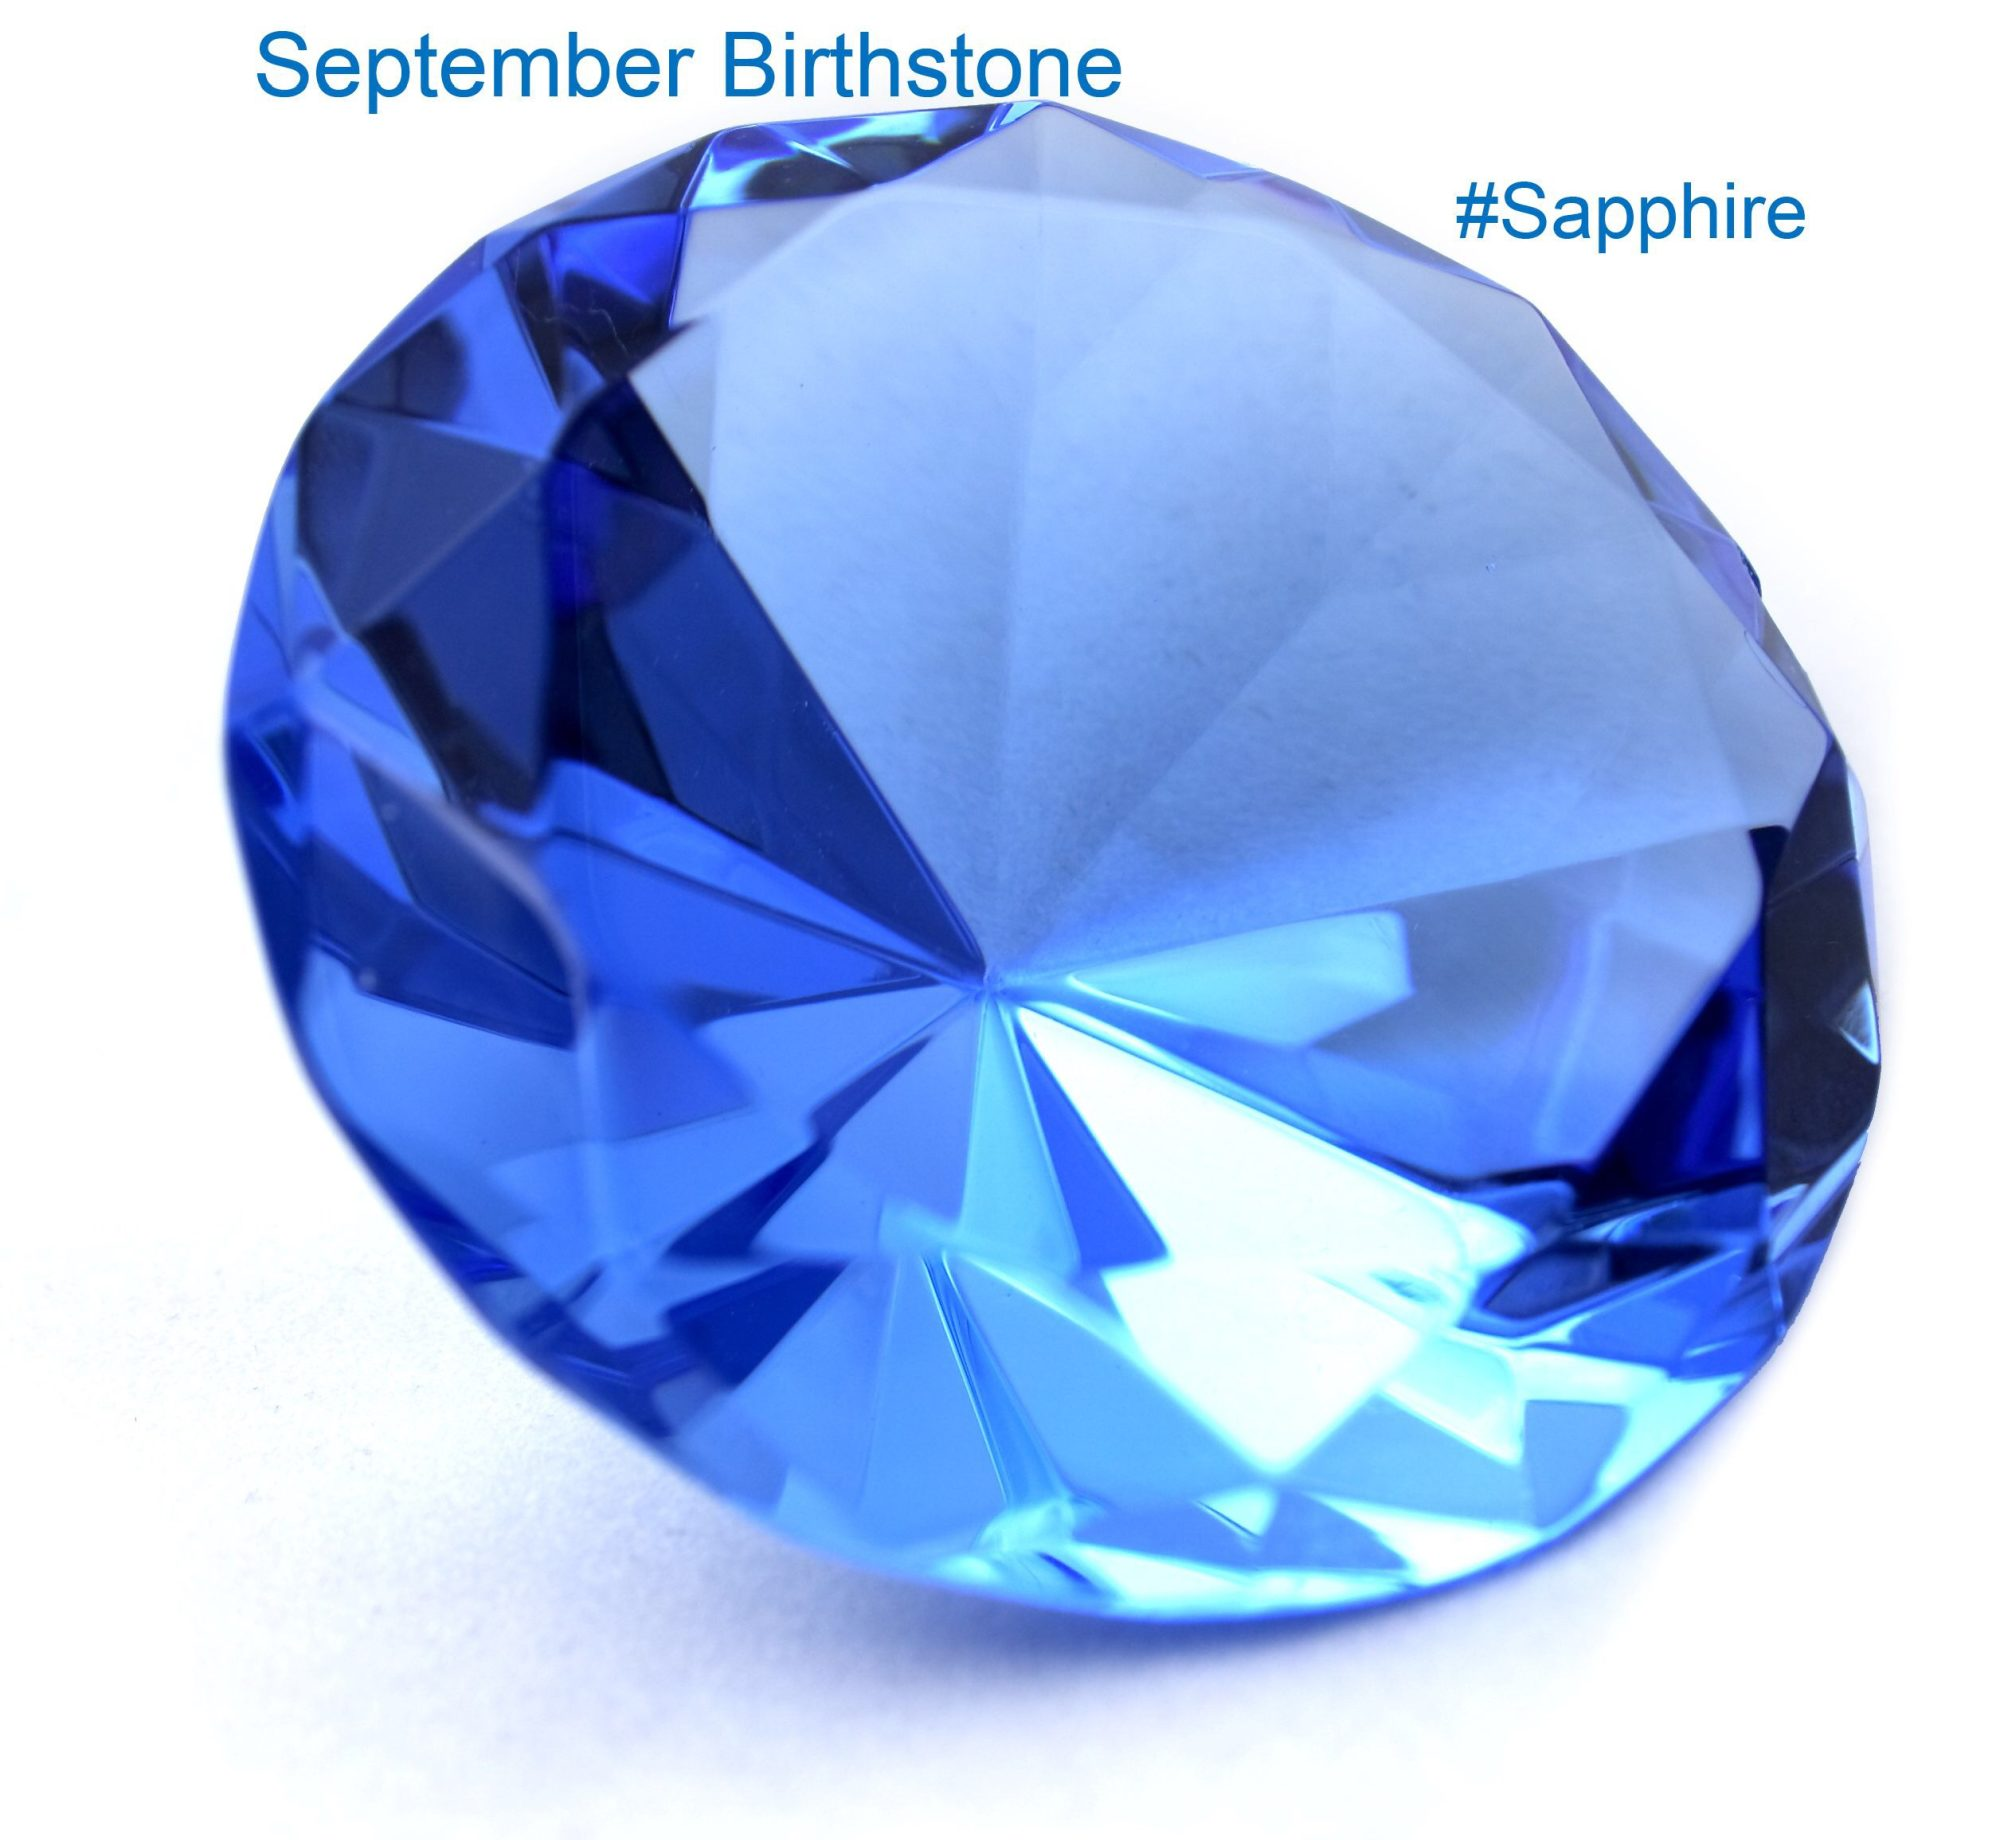 September's birthstone